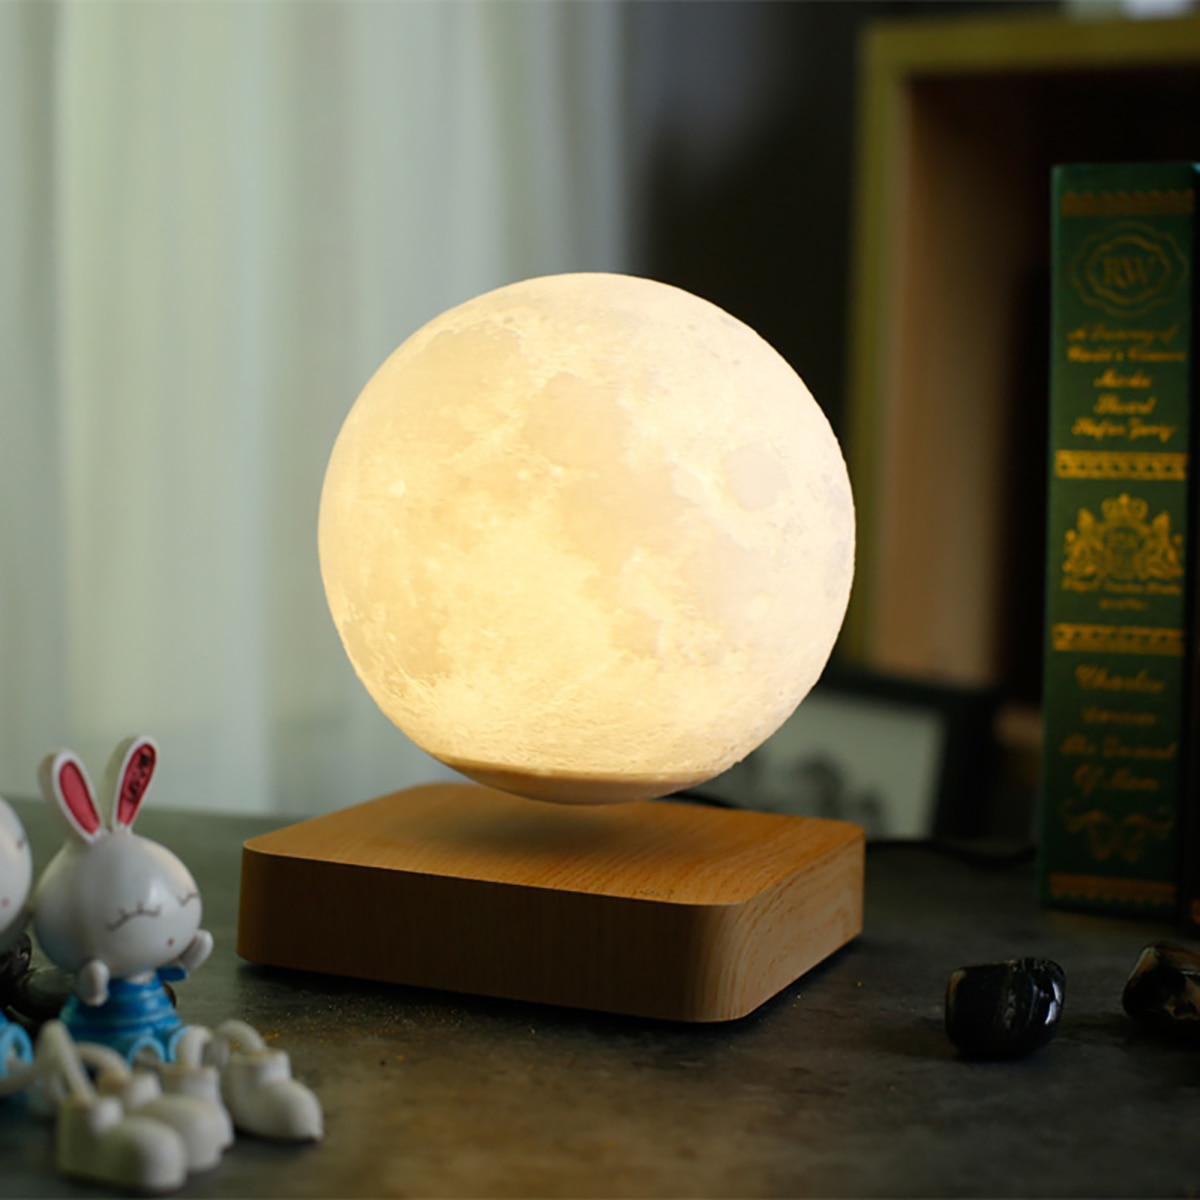 Magnetic Suspension 3D Moon Lamp LED Night Light Floating And Spinning In Air Freely Unique Gifts Home Decoration Holiday Light